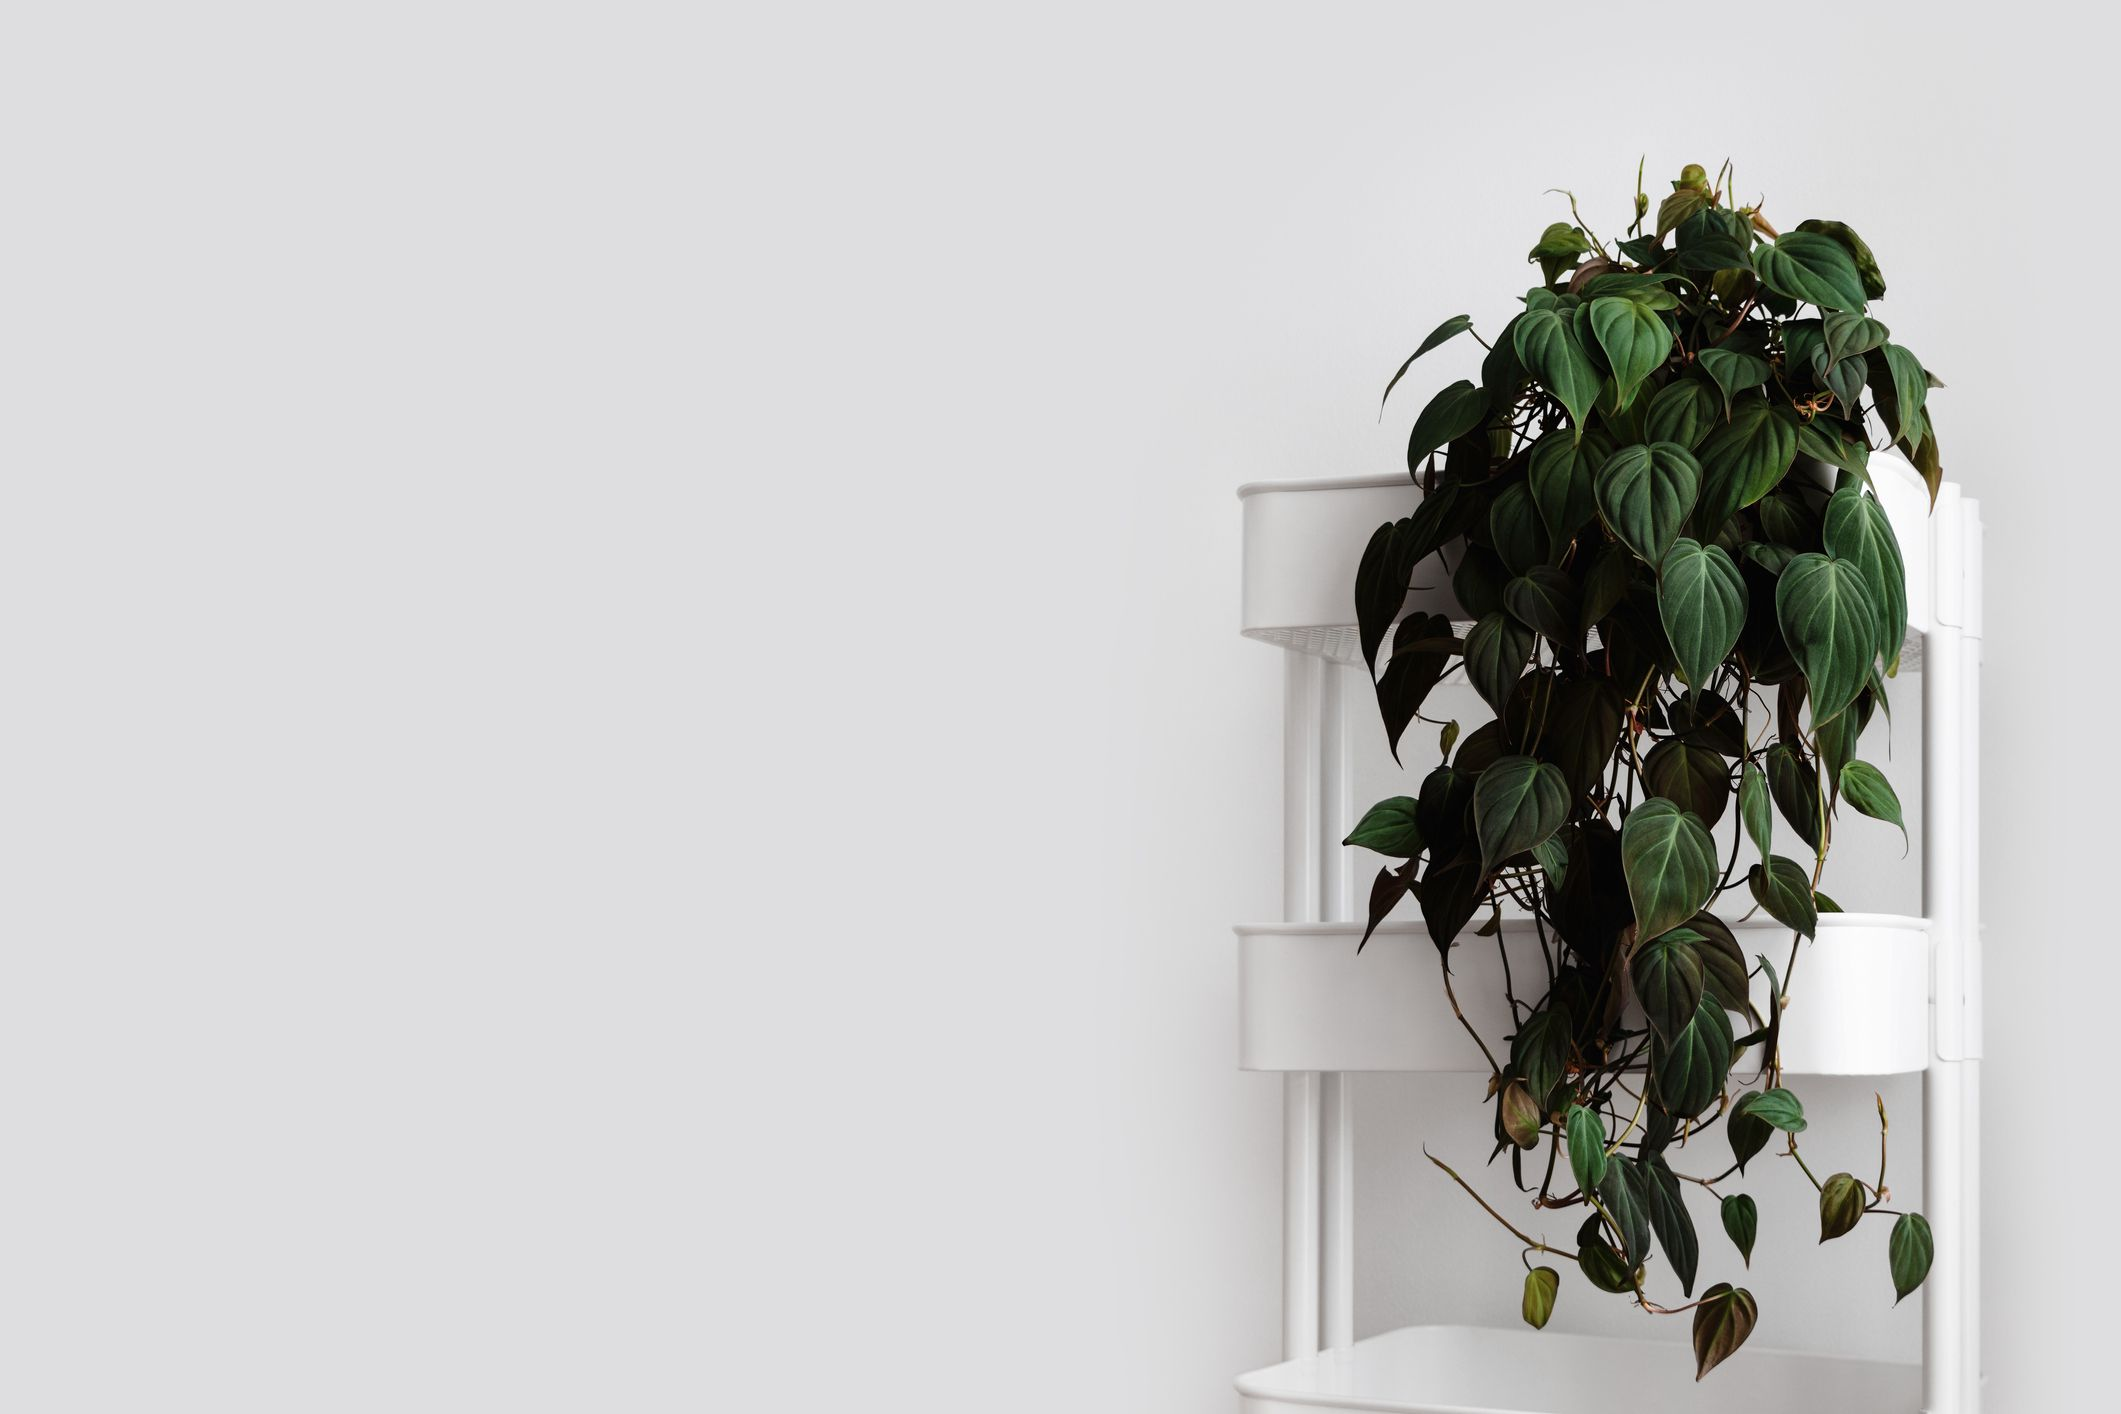 A Philodendron micans with dark green velvety leaves sitting in a white shelving unit.